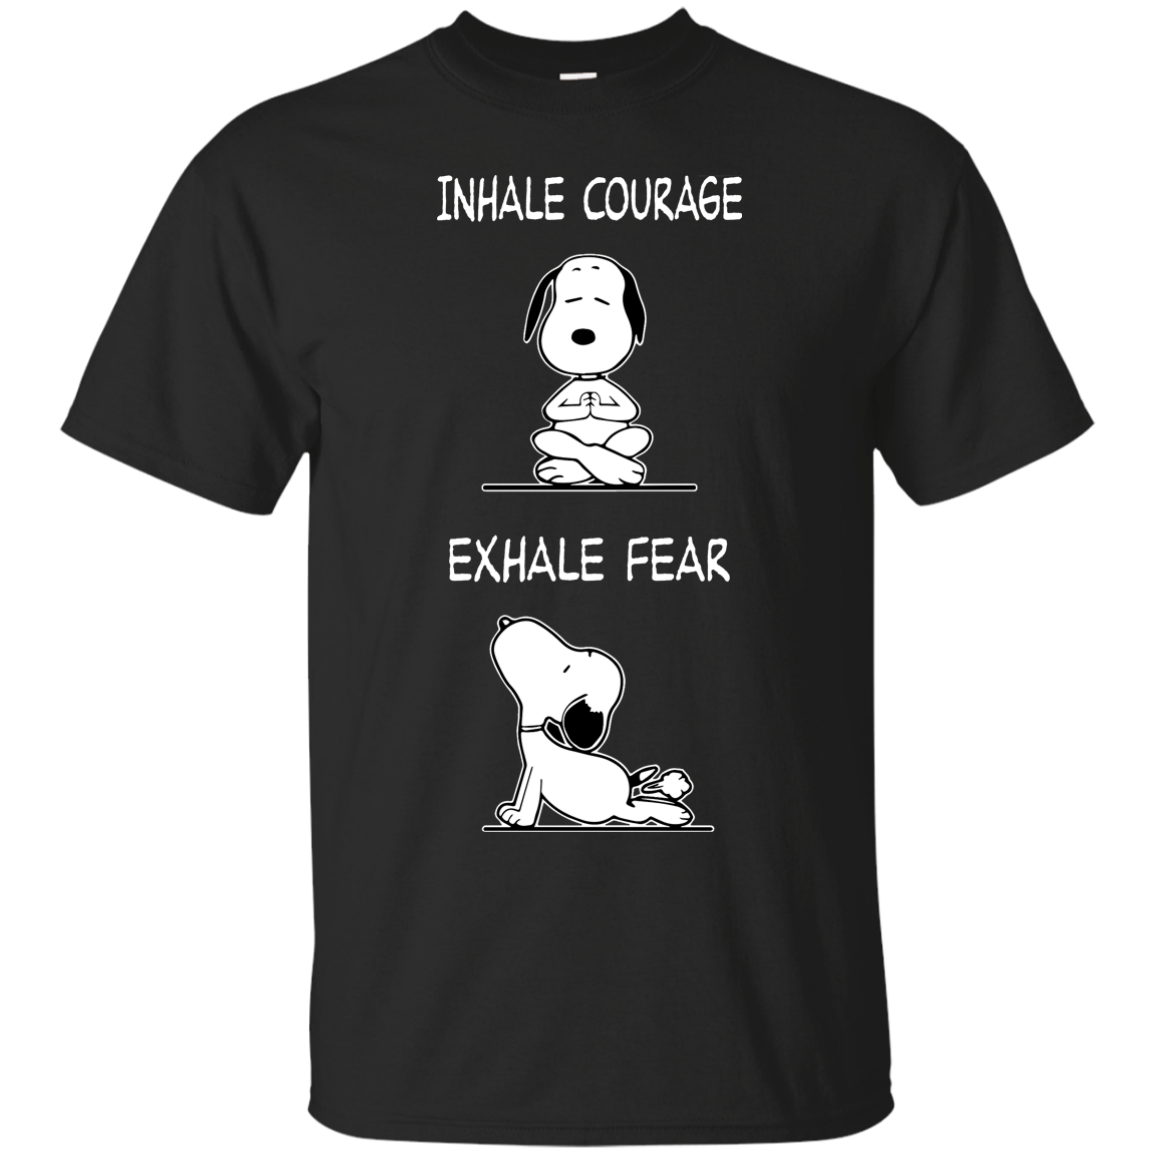 Snoopy Inhale Courage Exhale Fear Tshirt Inhalation And Exhalation Diagram